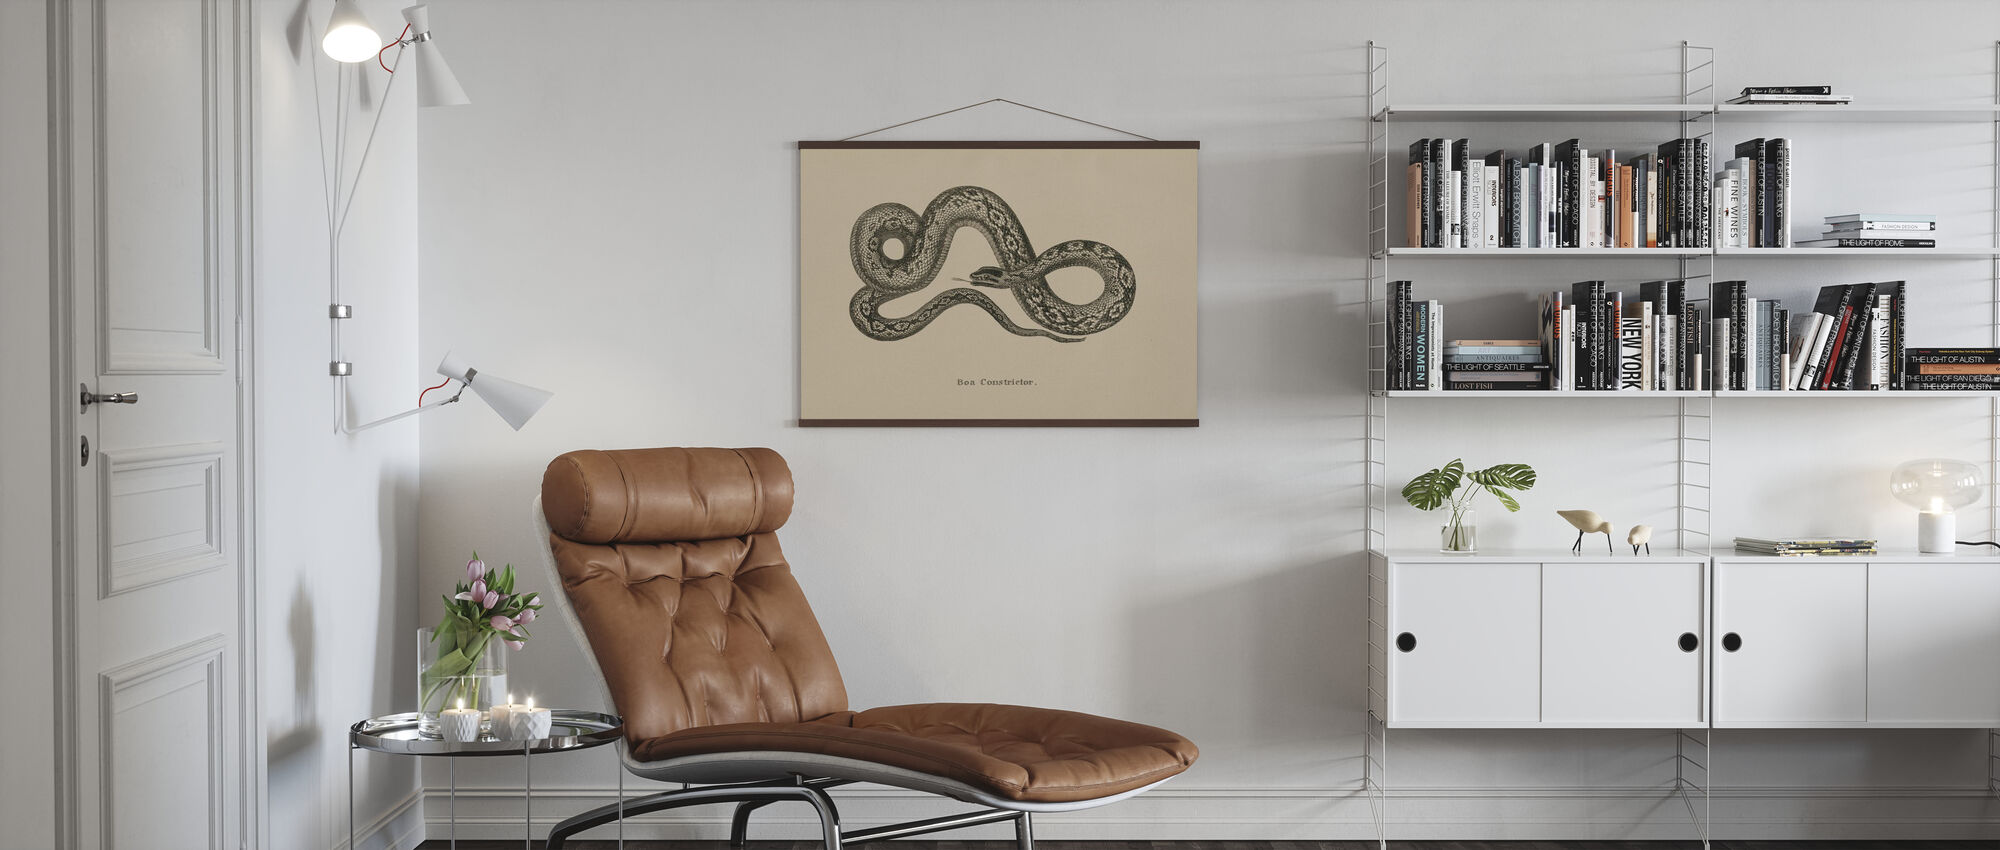 Vintage Boa Constrictor - Poster - Living Room